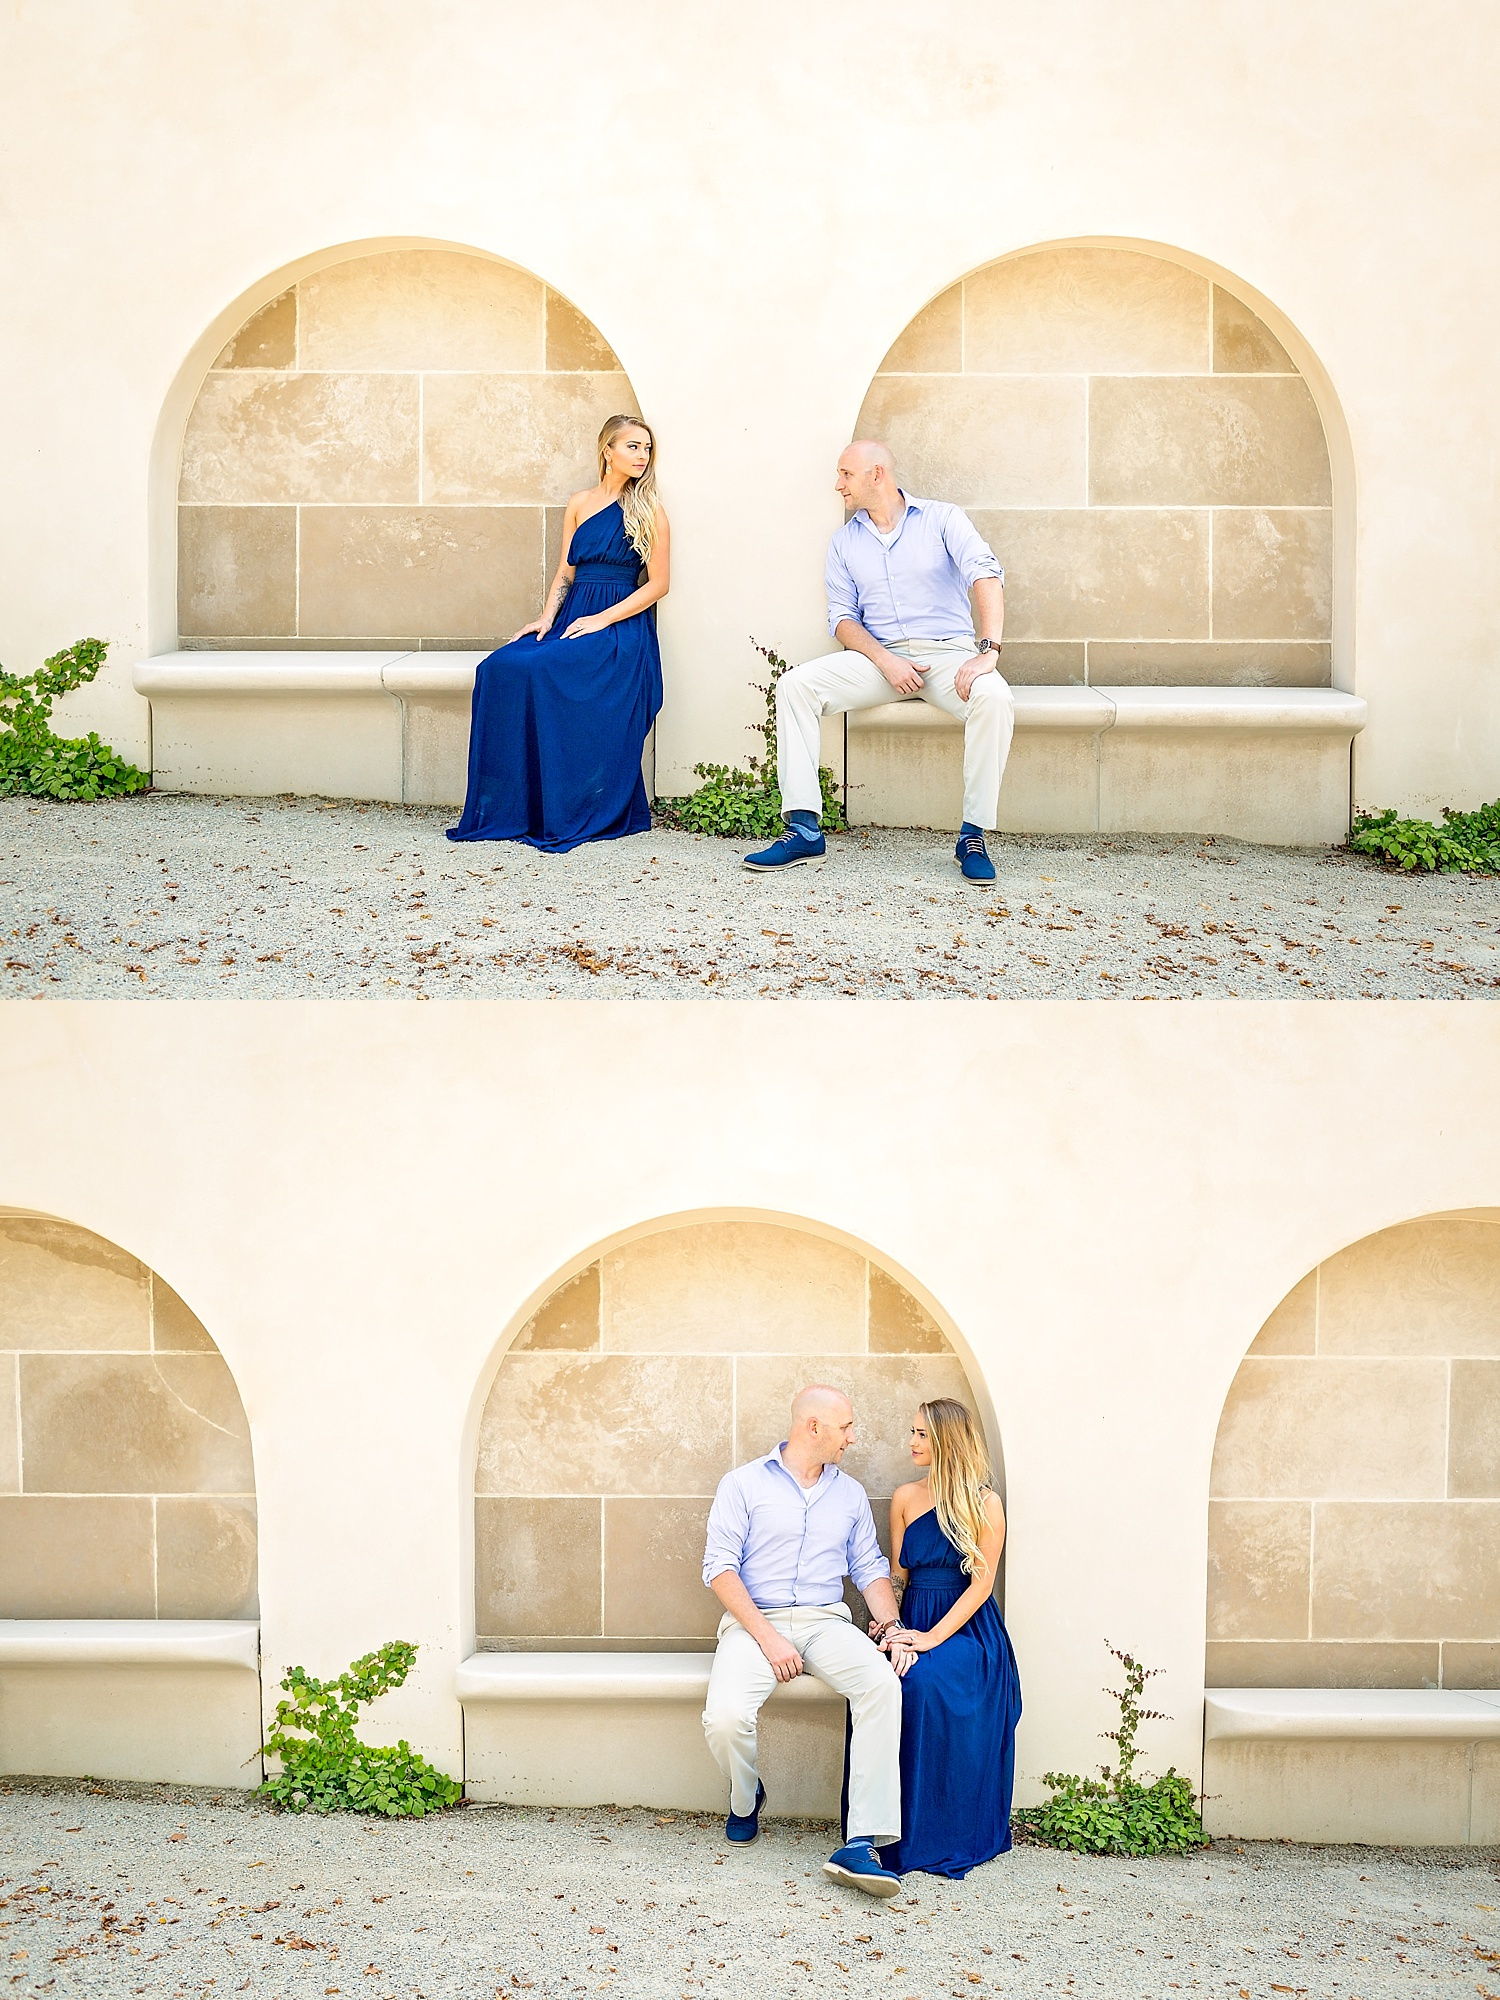 Longwood Gardens engagement photoshootLongwood Gardens engagement photoshoot